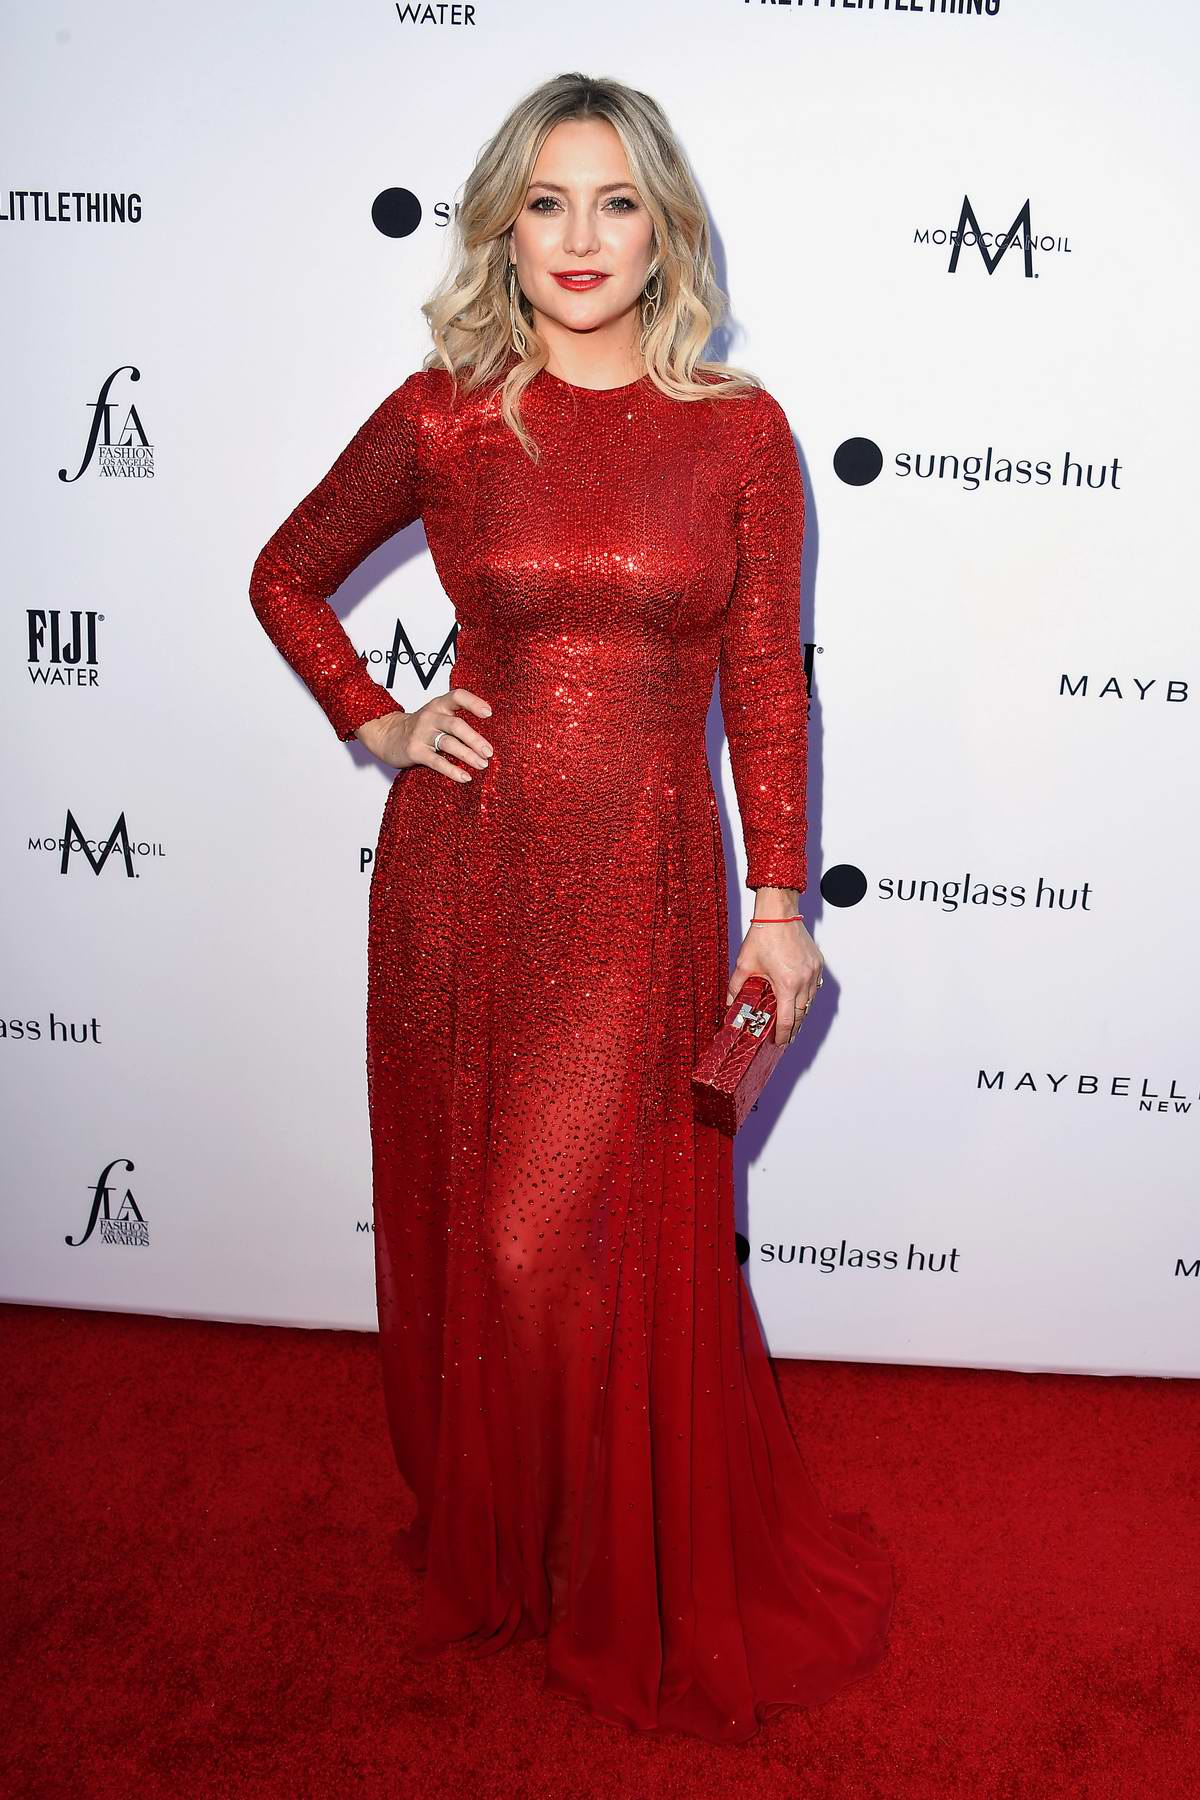 Kate Hudson attends The Daily Front Row's 5th Annual Fashion Awards at The Beverly Hills Hotel in Los Angeles